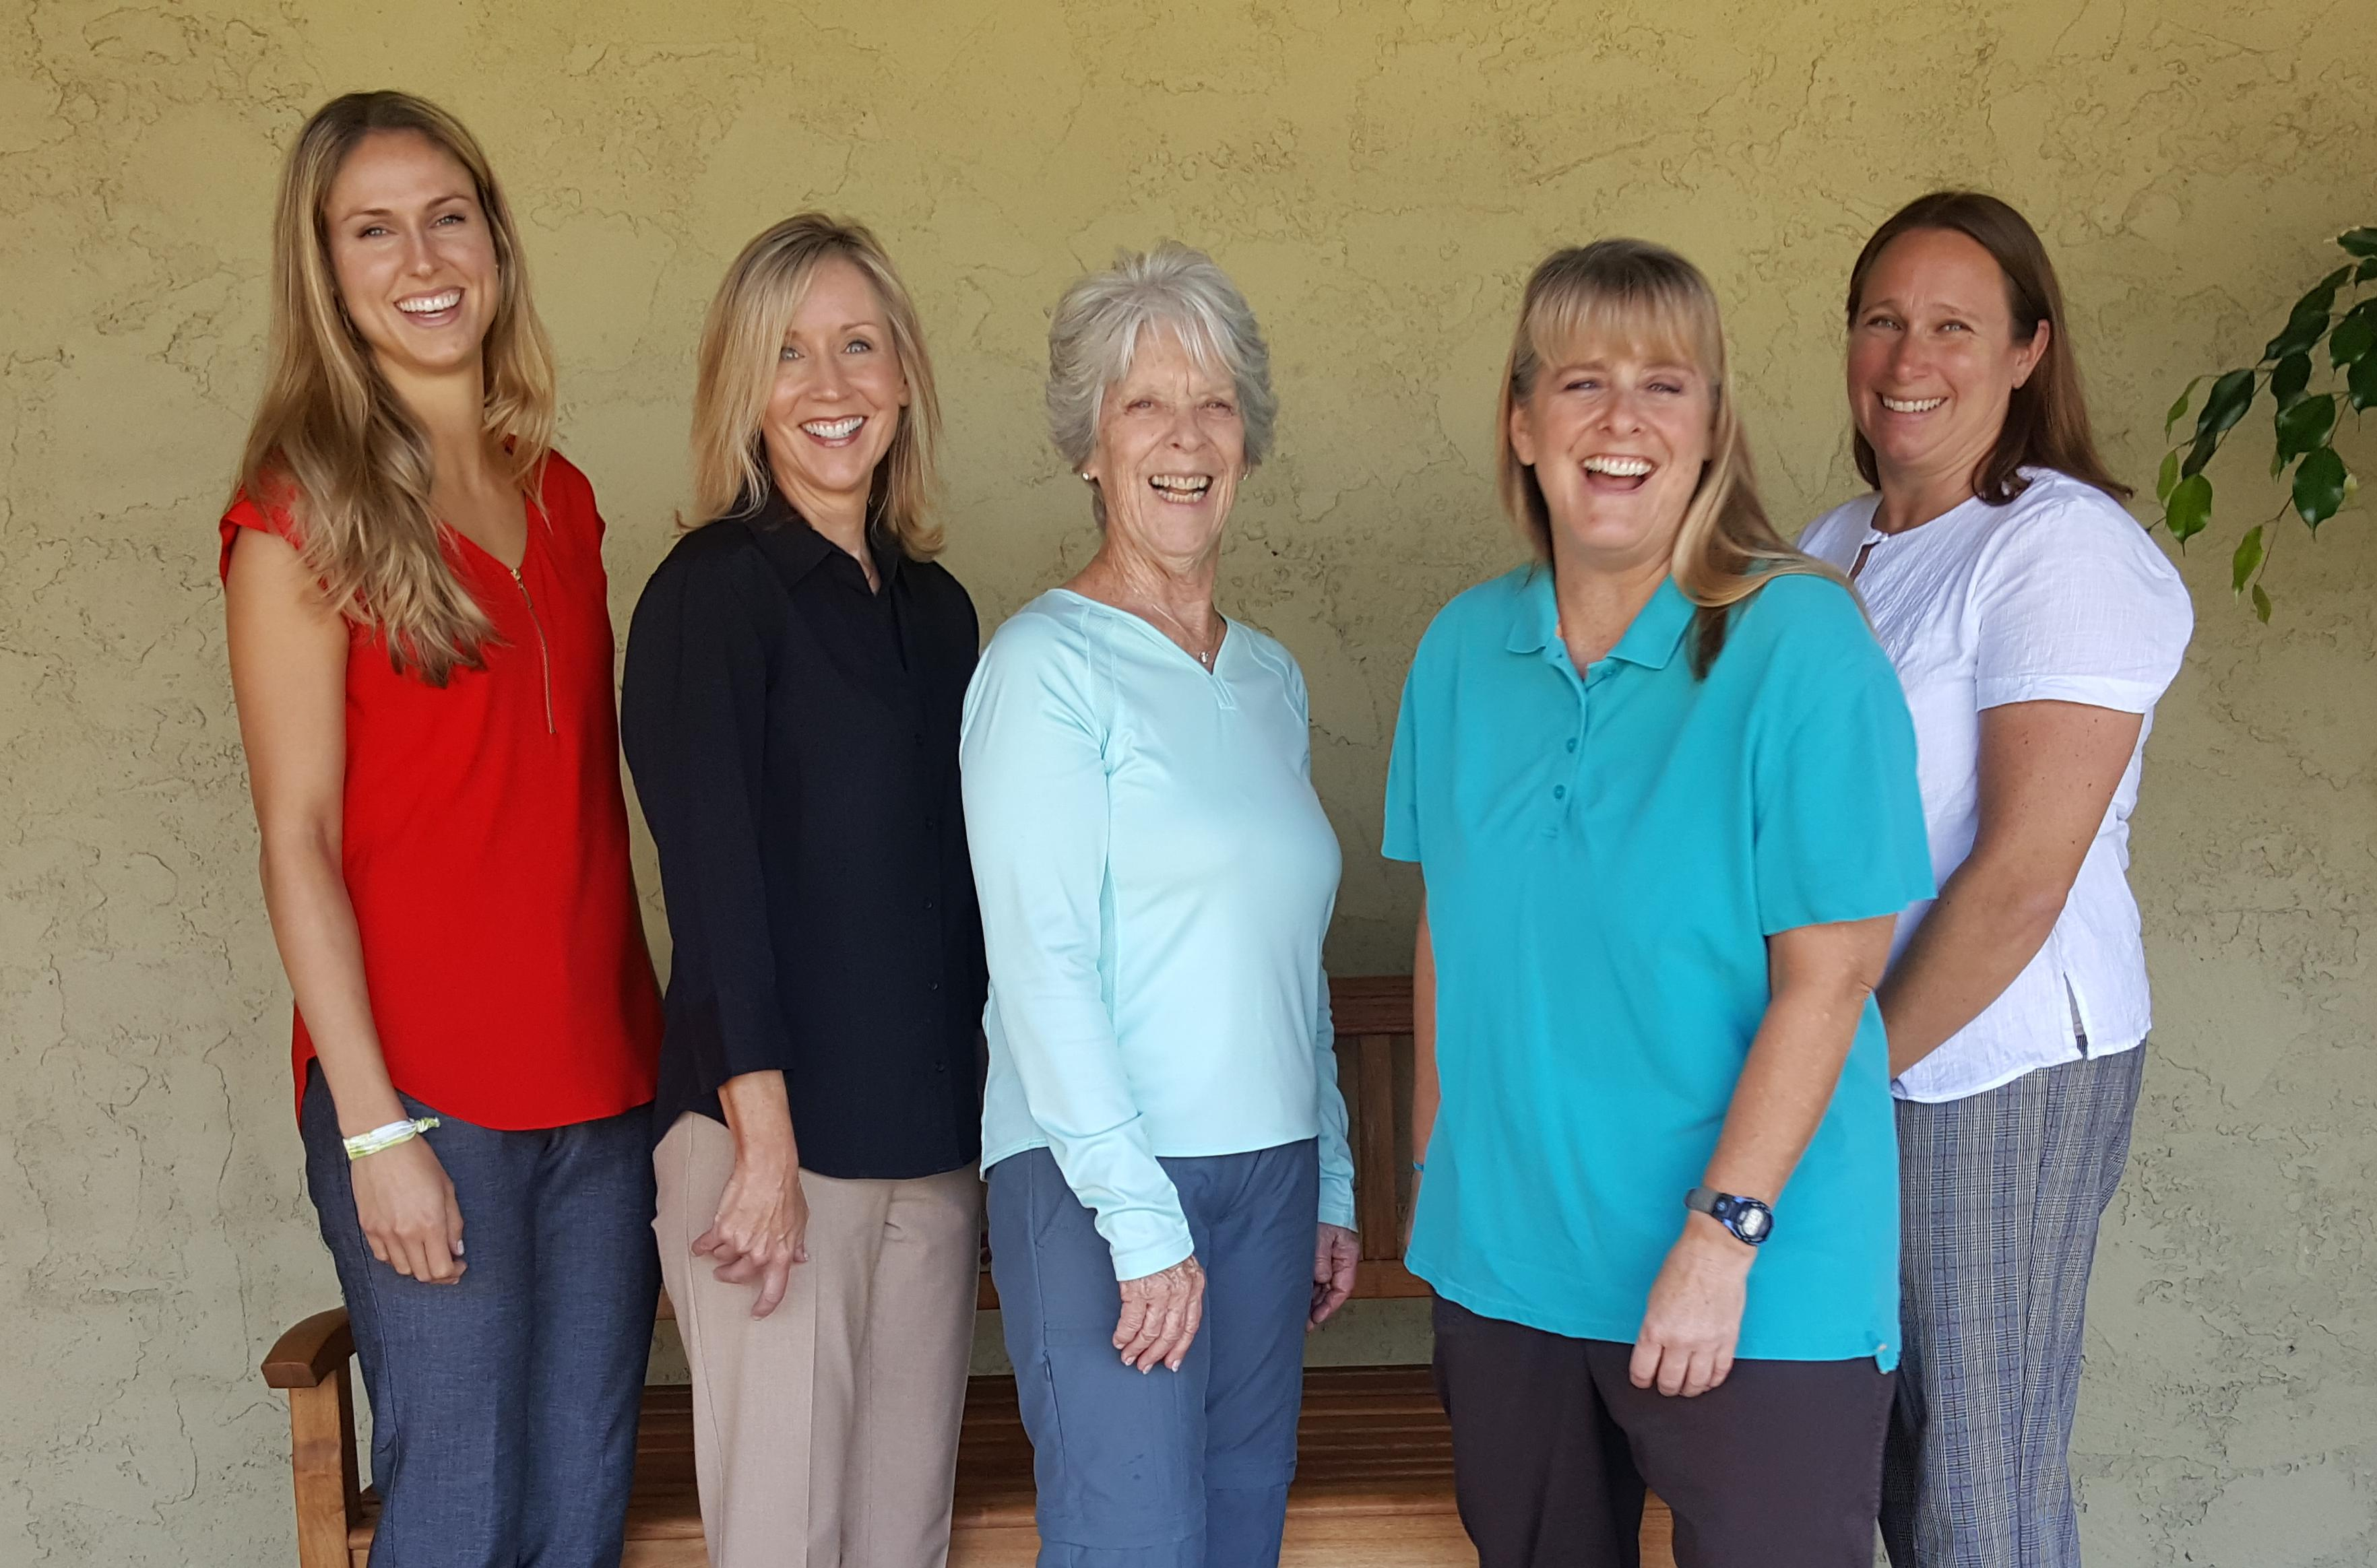 Beach communities physical therapy - Welcome To Coast Physical Therapy Kate Suzanne Jeanne Kelly Nysa